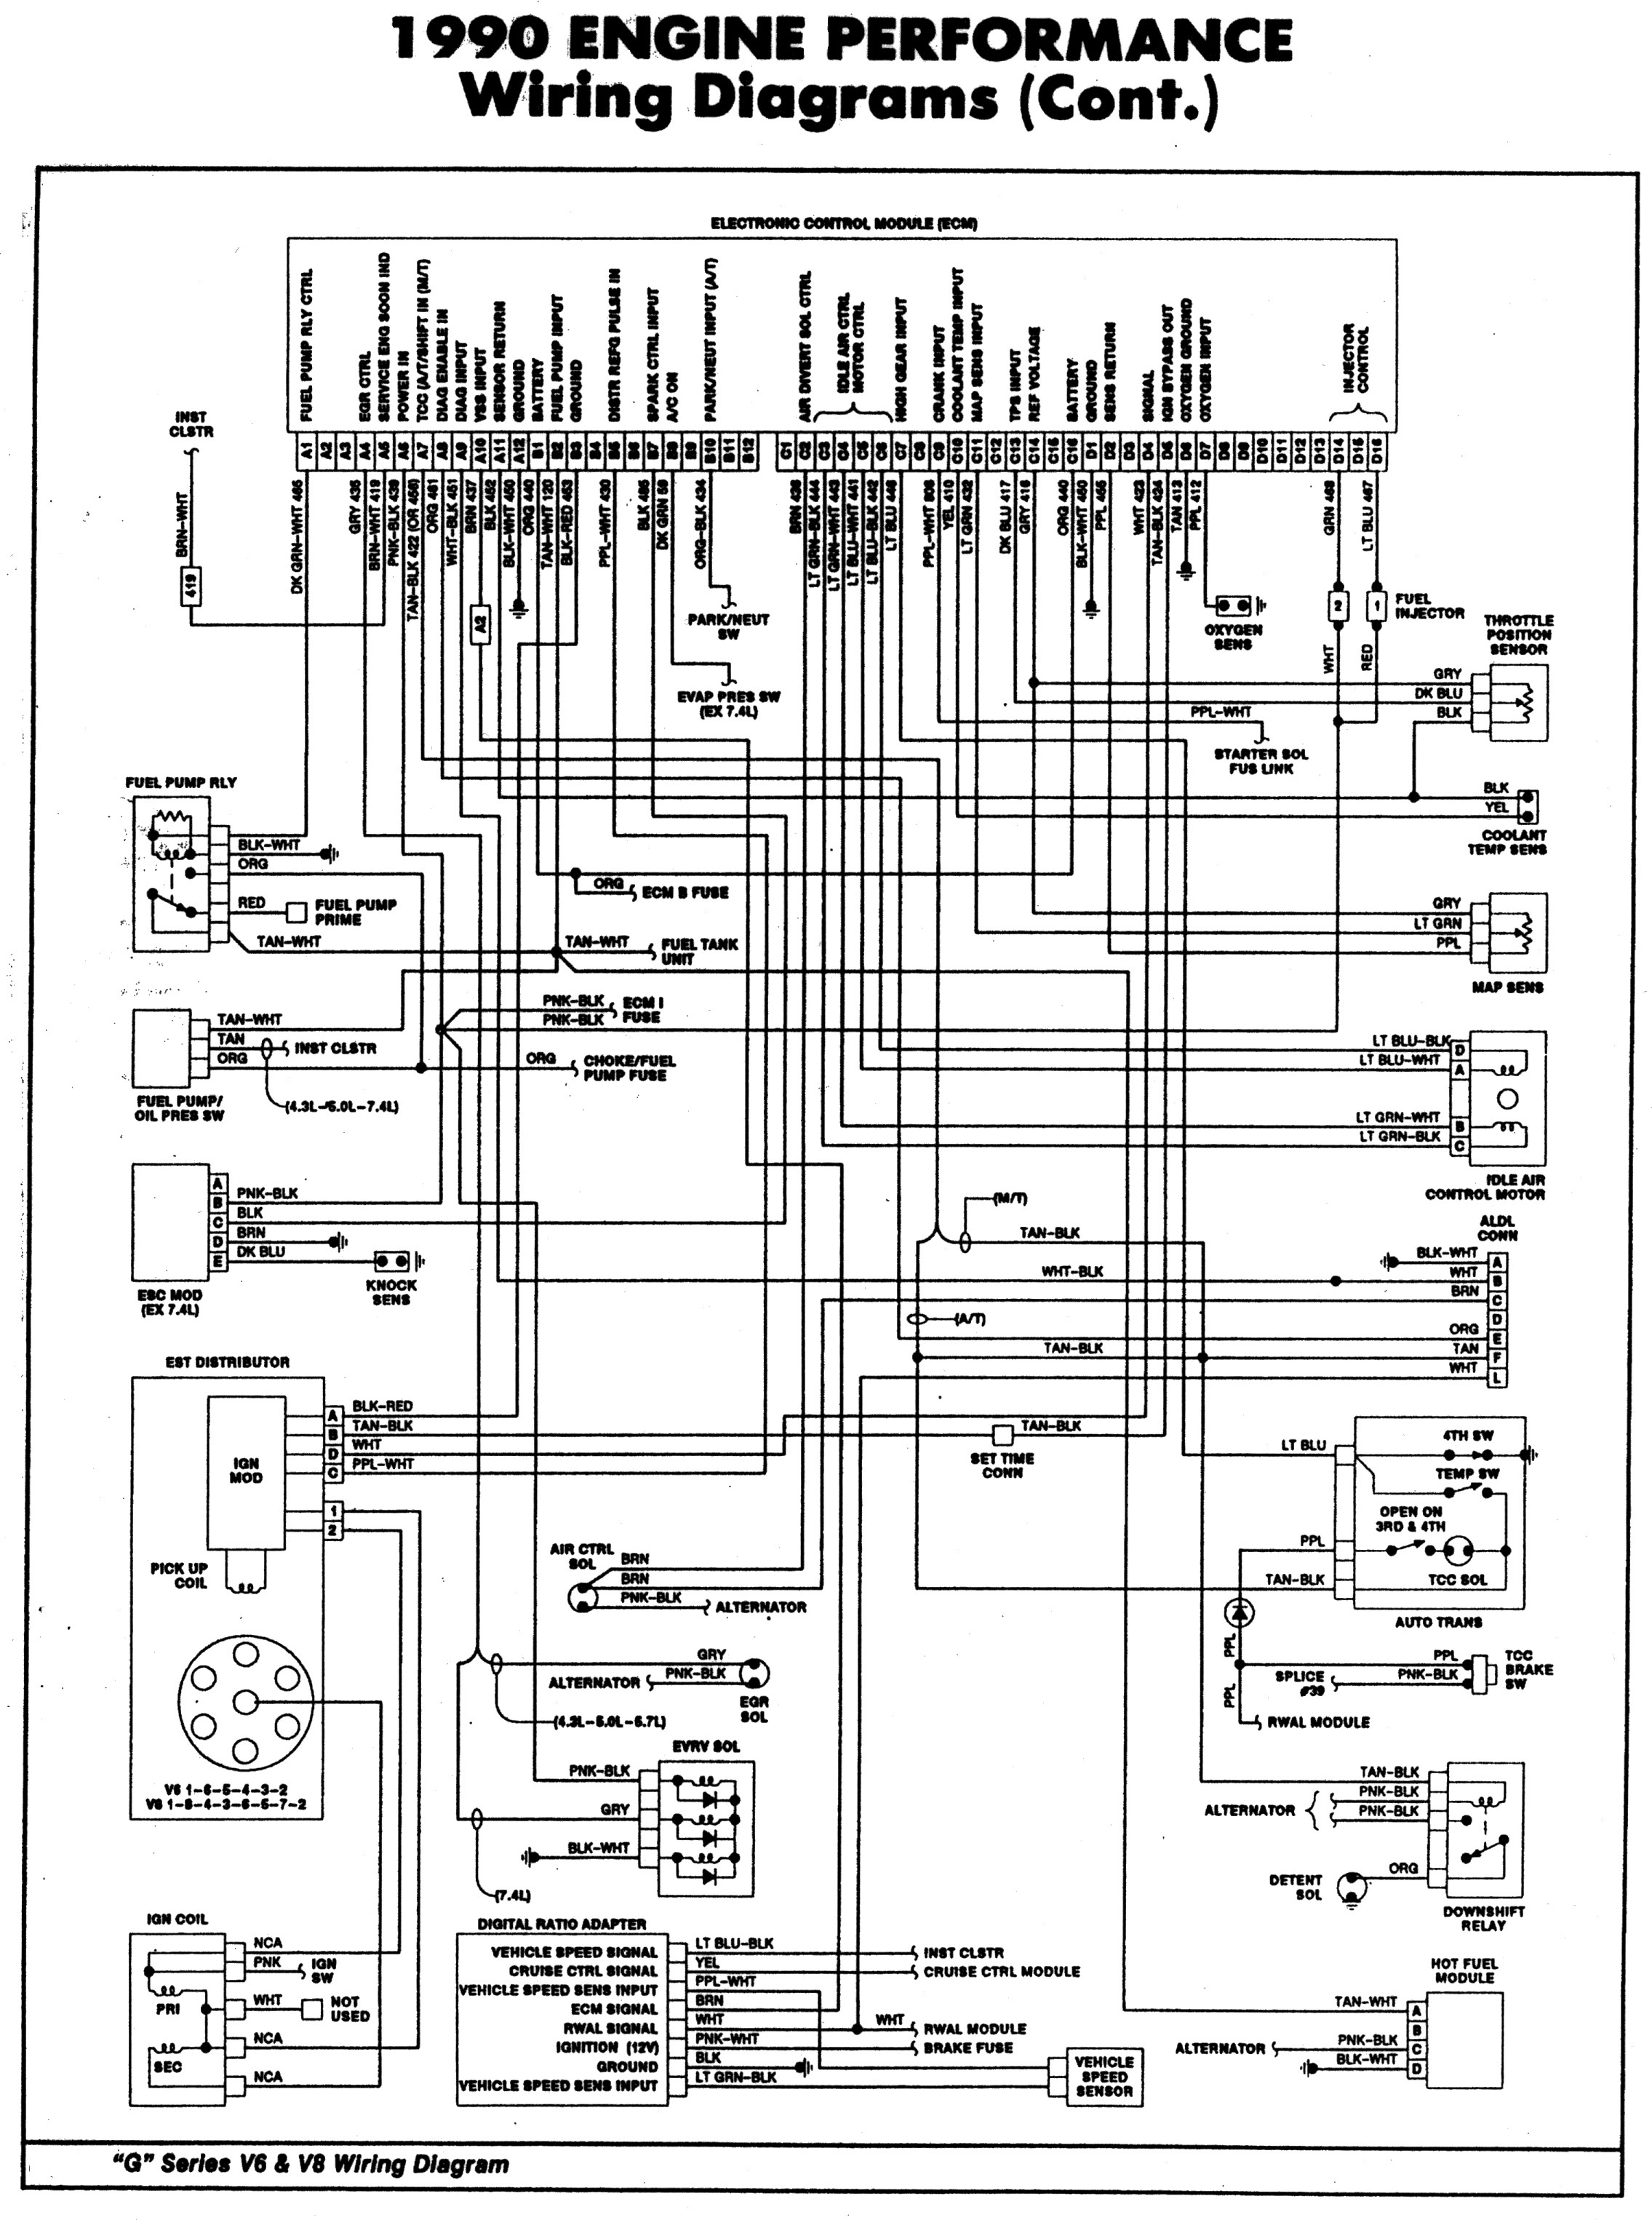 medium resolution of 1988 chevy k1500 wiring diagram schema wiring diagram 1988 chevy k1500 tail light wiring diagram 1988 chevy k1500 wiring diagram